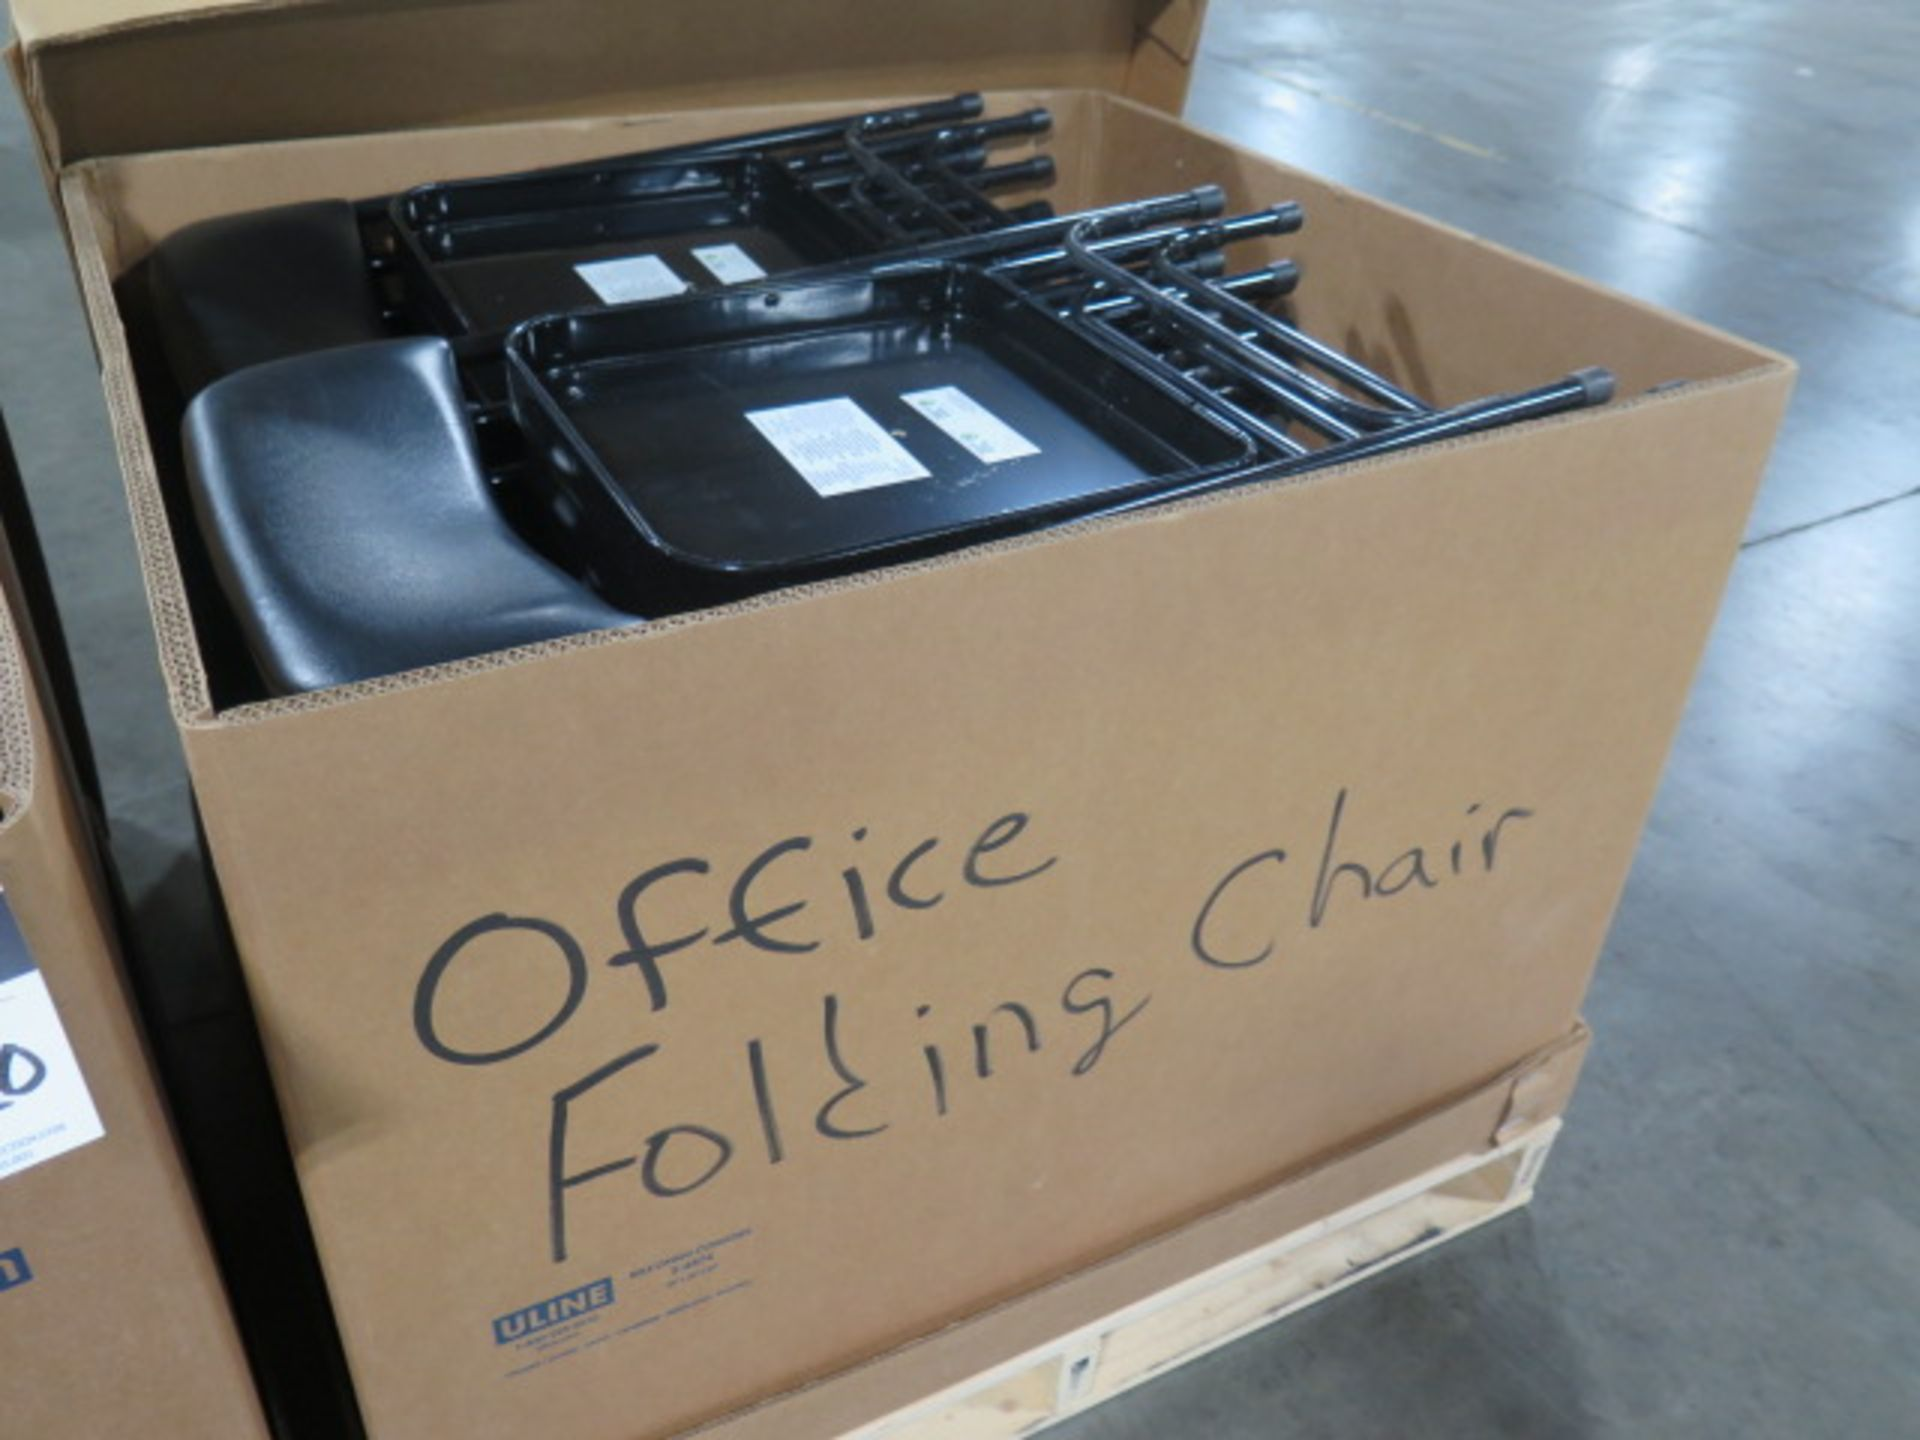 Office Folding Chairs - Black - Padded (2 Crates) (SOLD AS-IS - NO WARRANTY) - Image 5 of 9